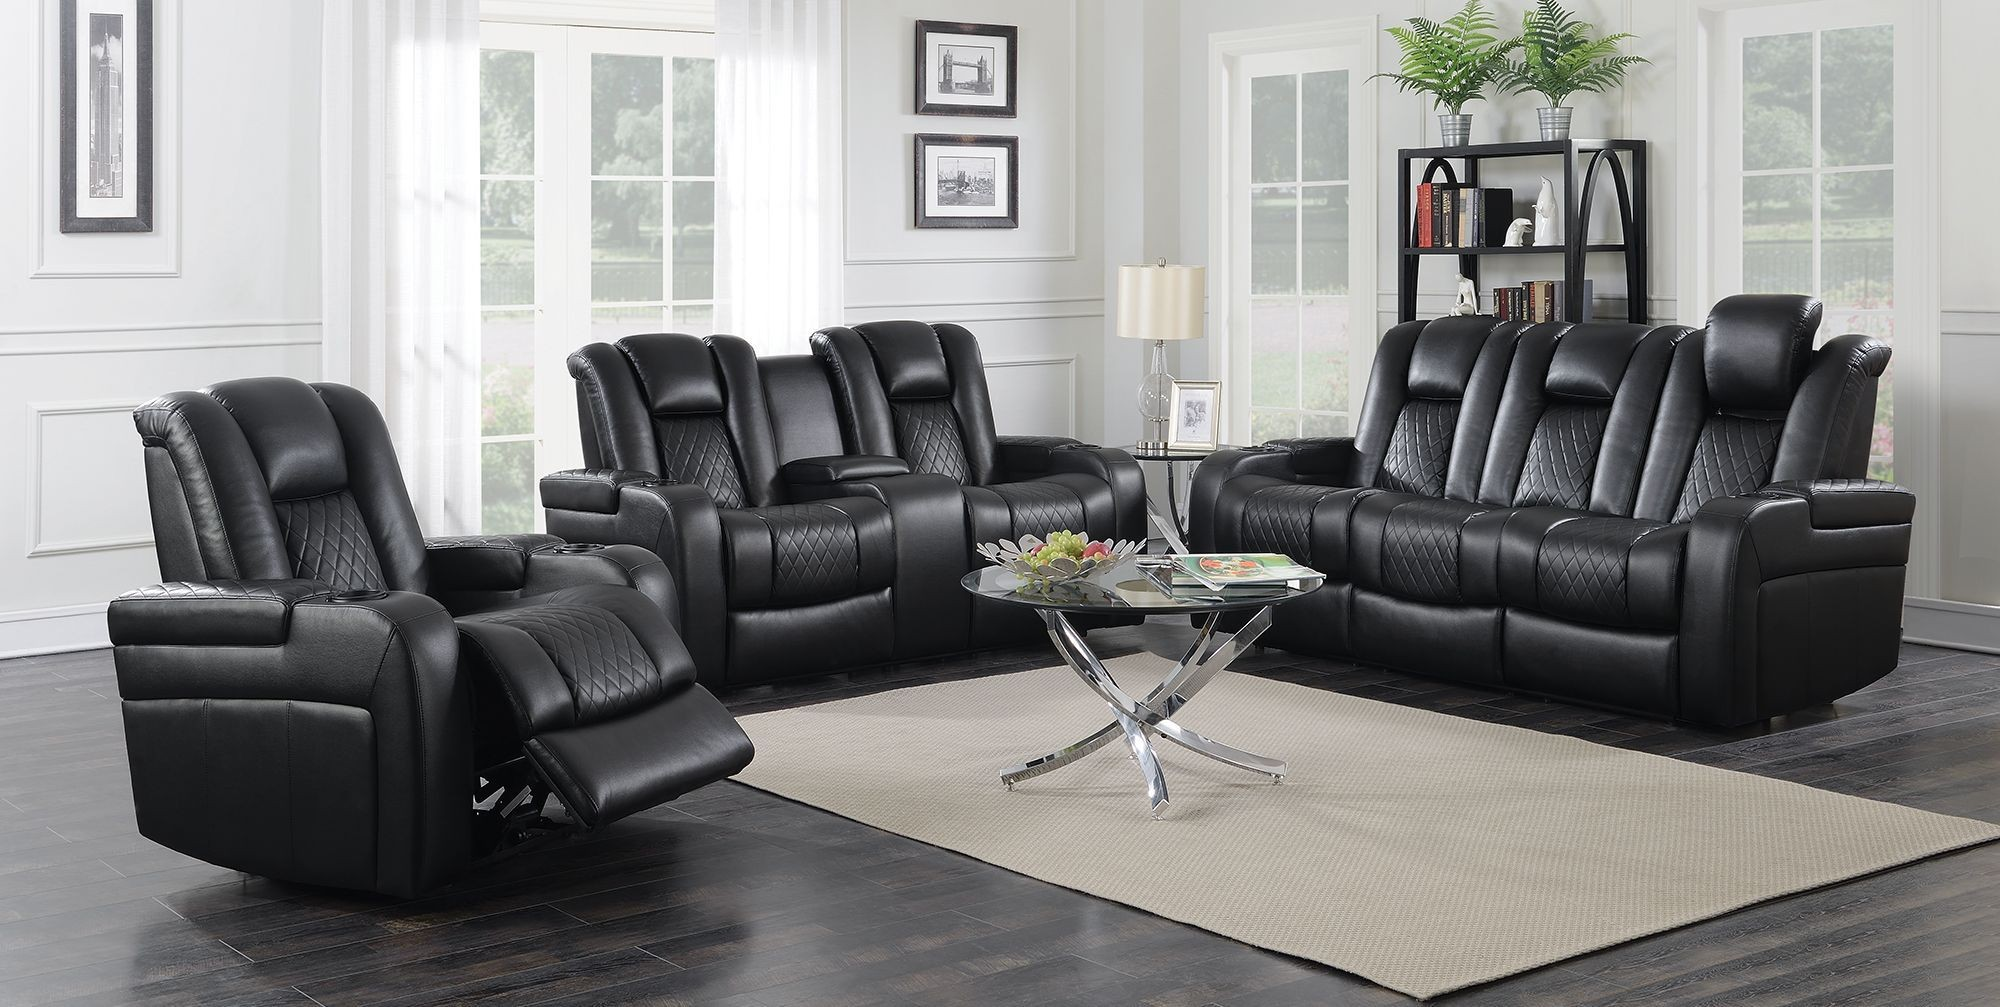 Delangelo motion black power motion living room set from coaster coleman furniture for Motion living room furniture